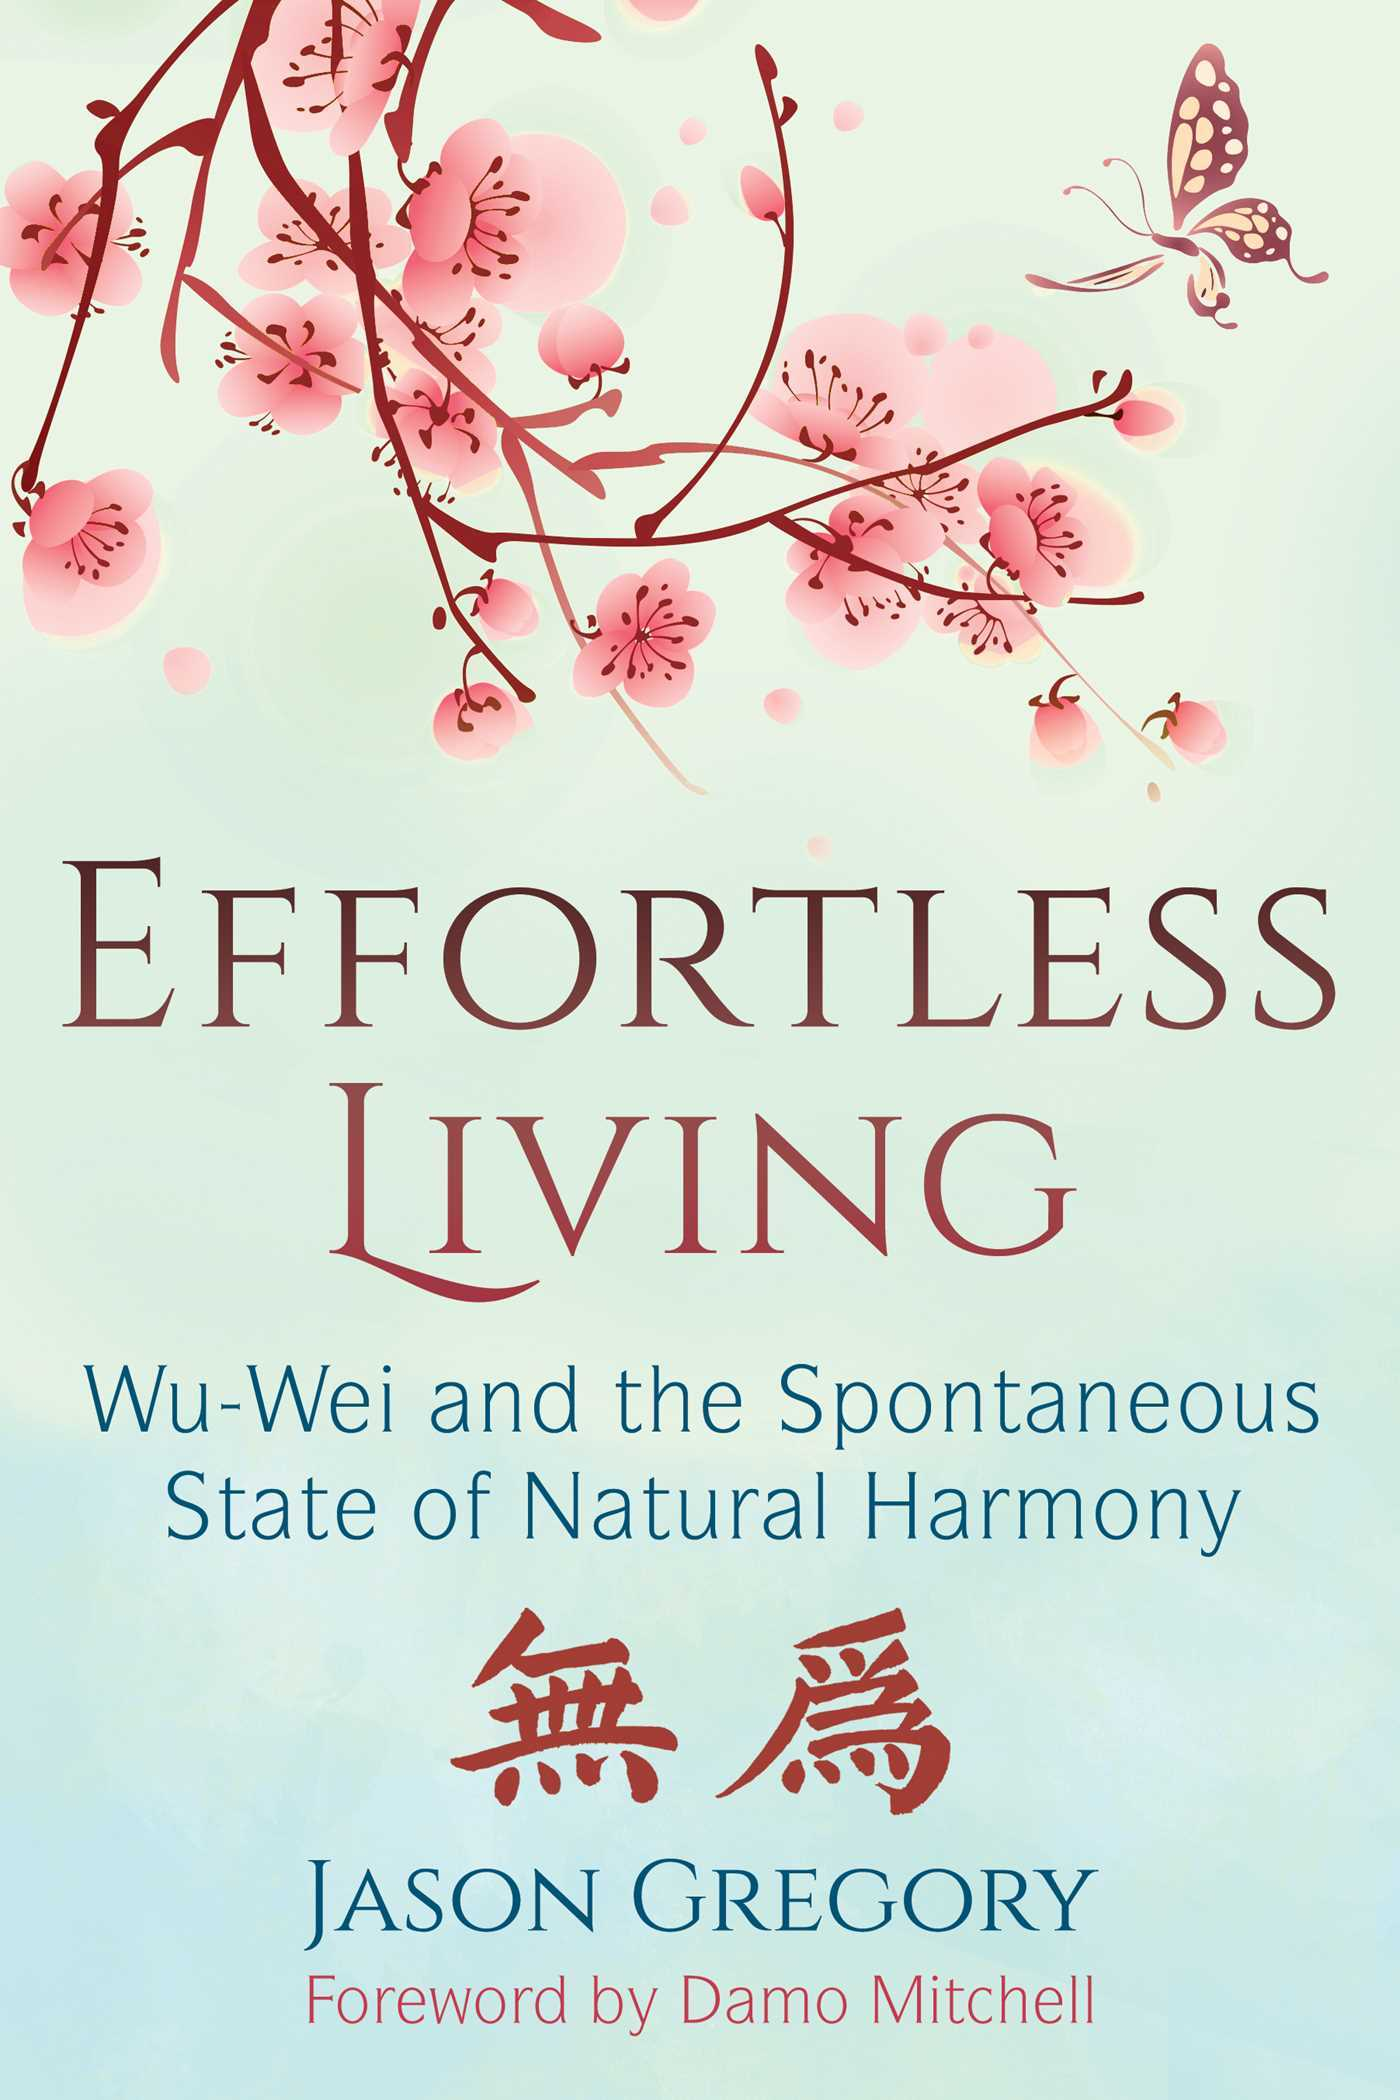 Effortless Living Wu-Wei and the Spontaneous State of Natural Harmony